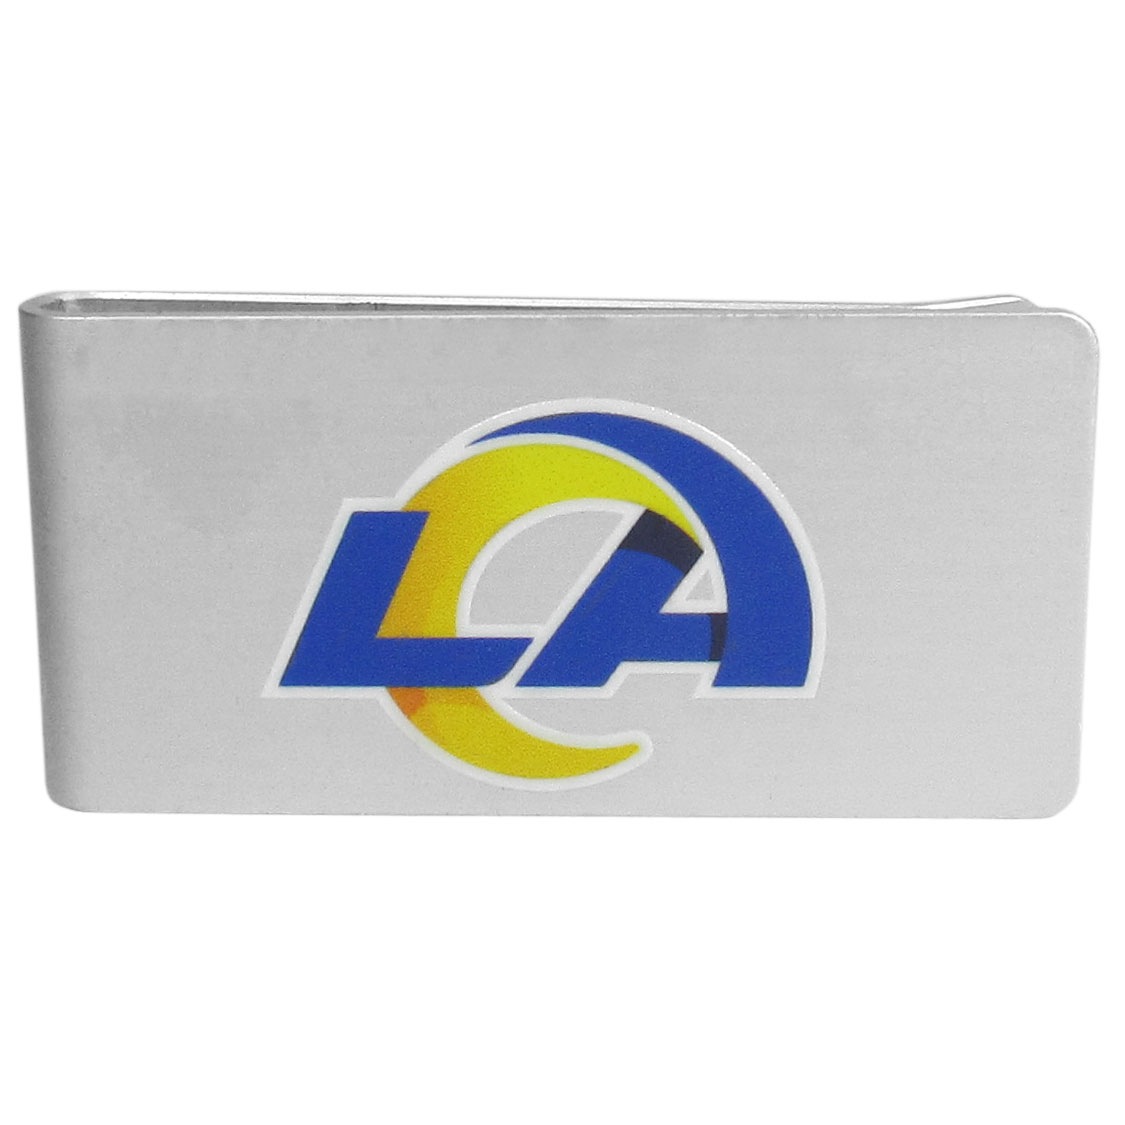 Los Angeles Rams Logo Money Clip - Our brushed metal money clip has classic style and functionality. The attractive clip features the Los Angeles Rams logo expertly printed on front.